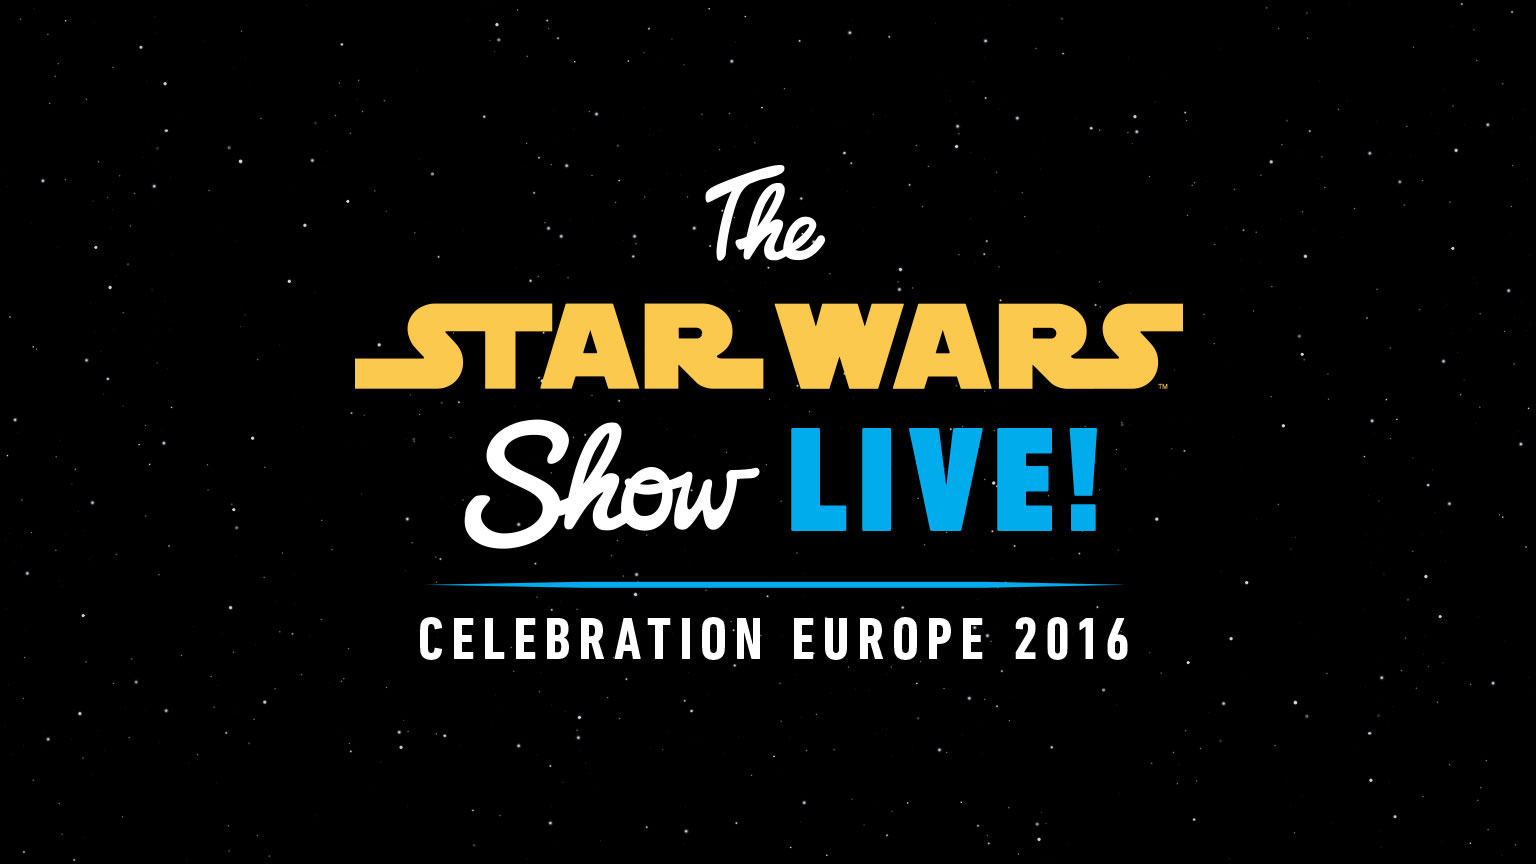 201607_star-wars-show-live-announce